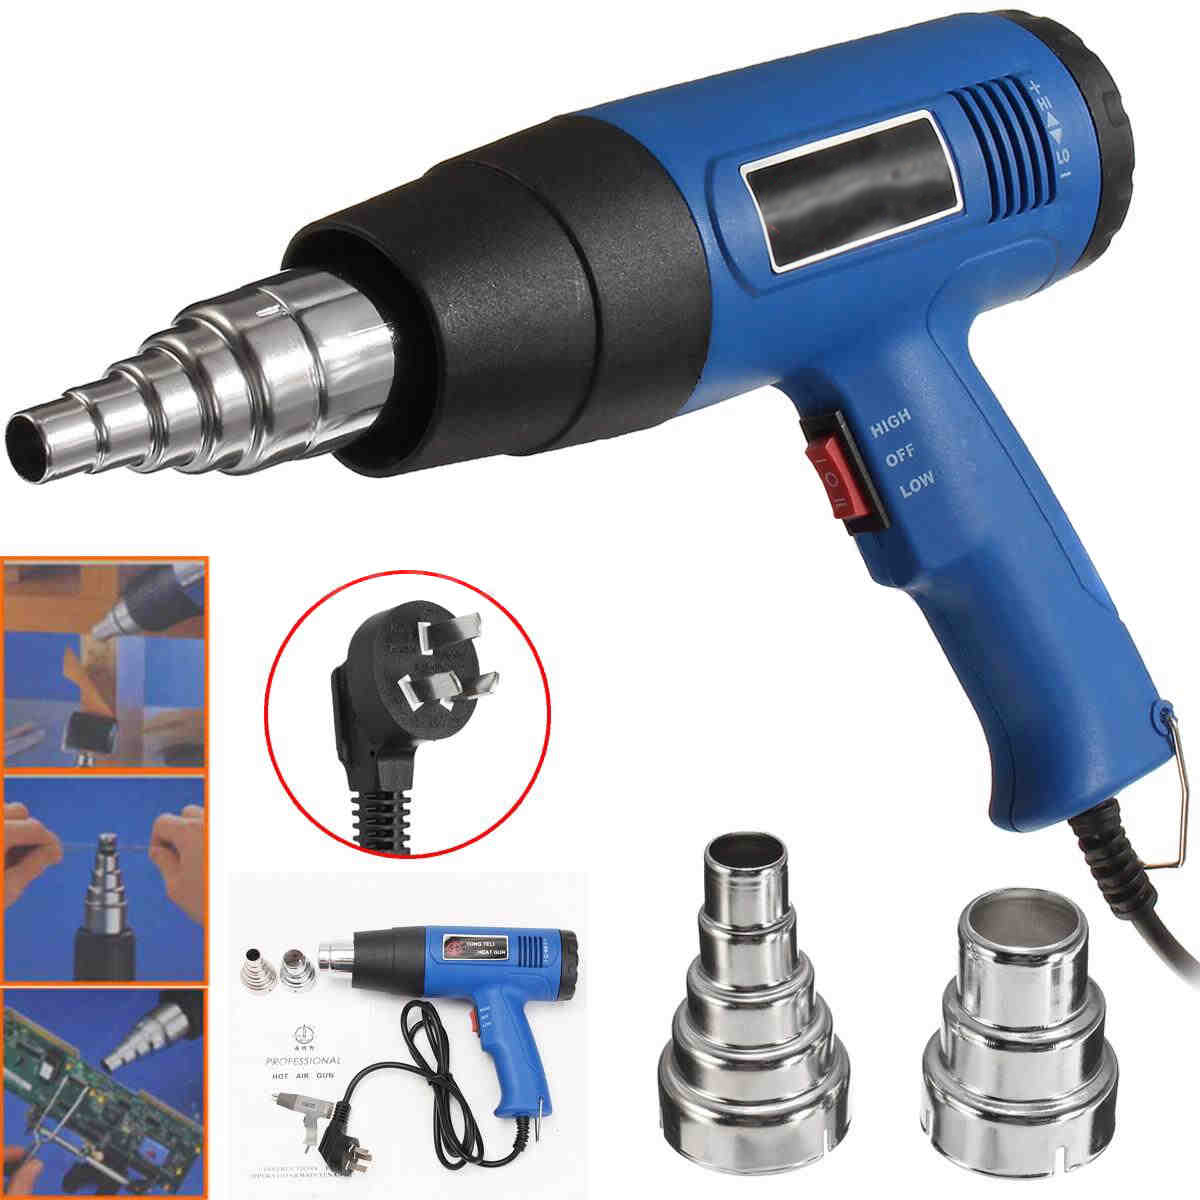 OSSIEAO New Hot Air Heat Blower 1800W 600 Degrees Celsius Paint Drying Striping Tool & 2 Nozzles Blue